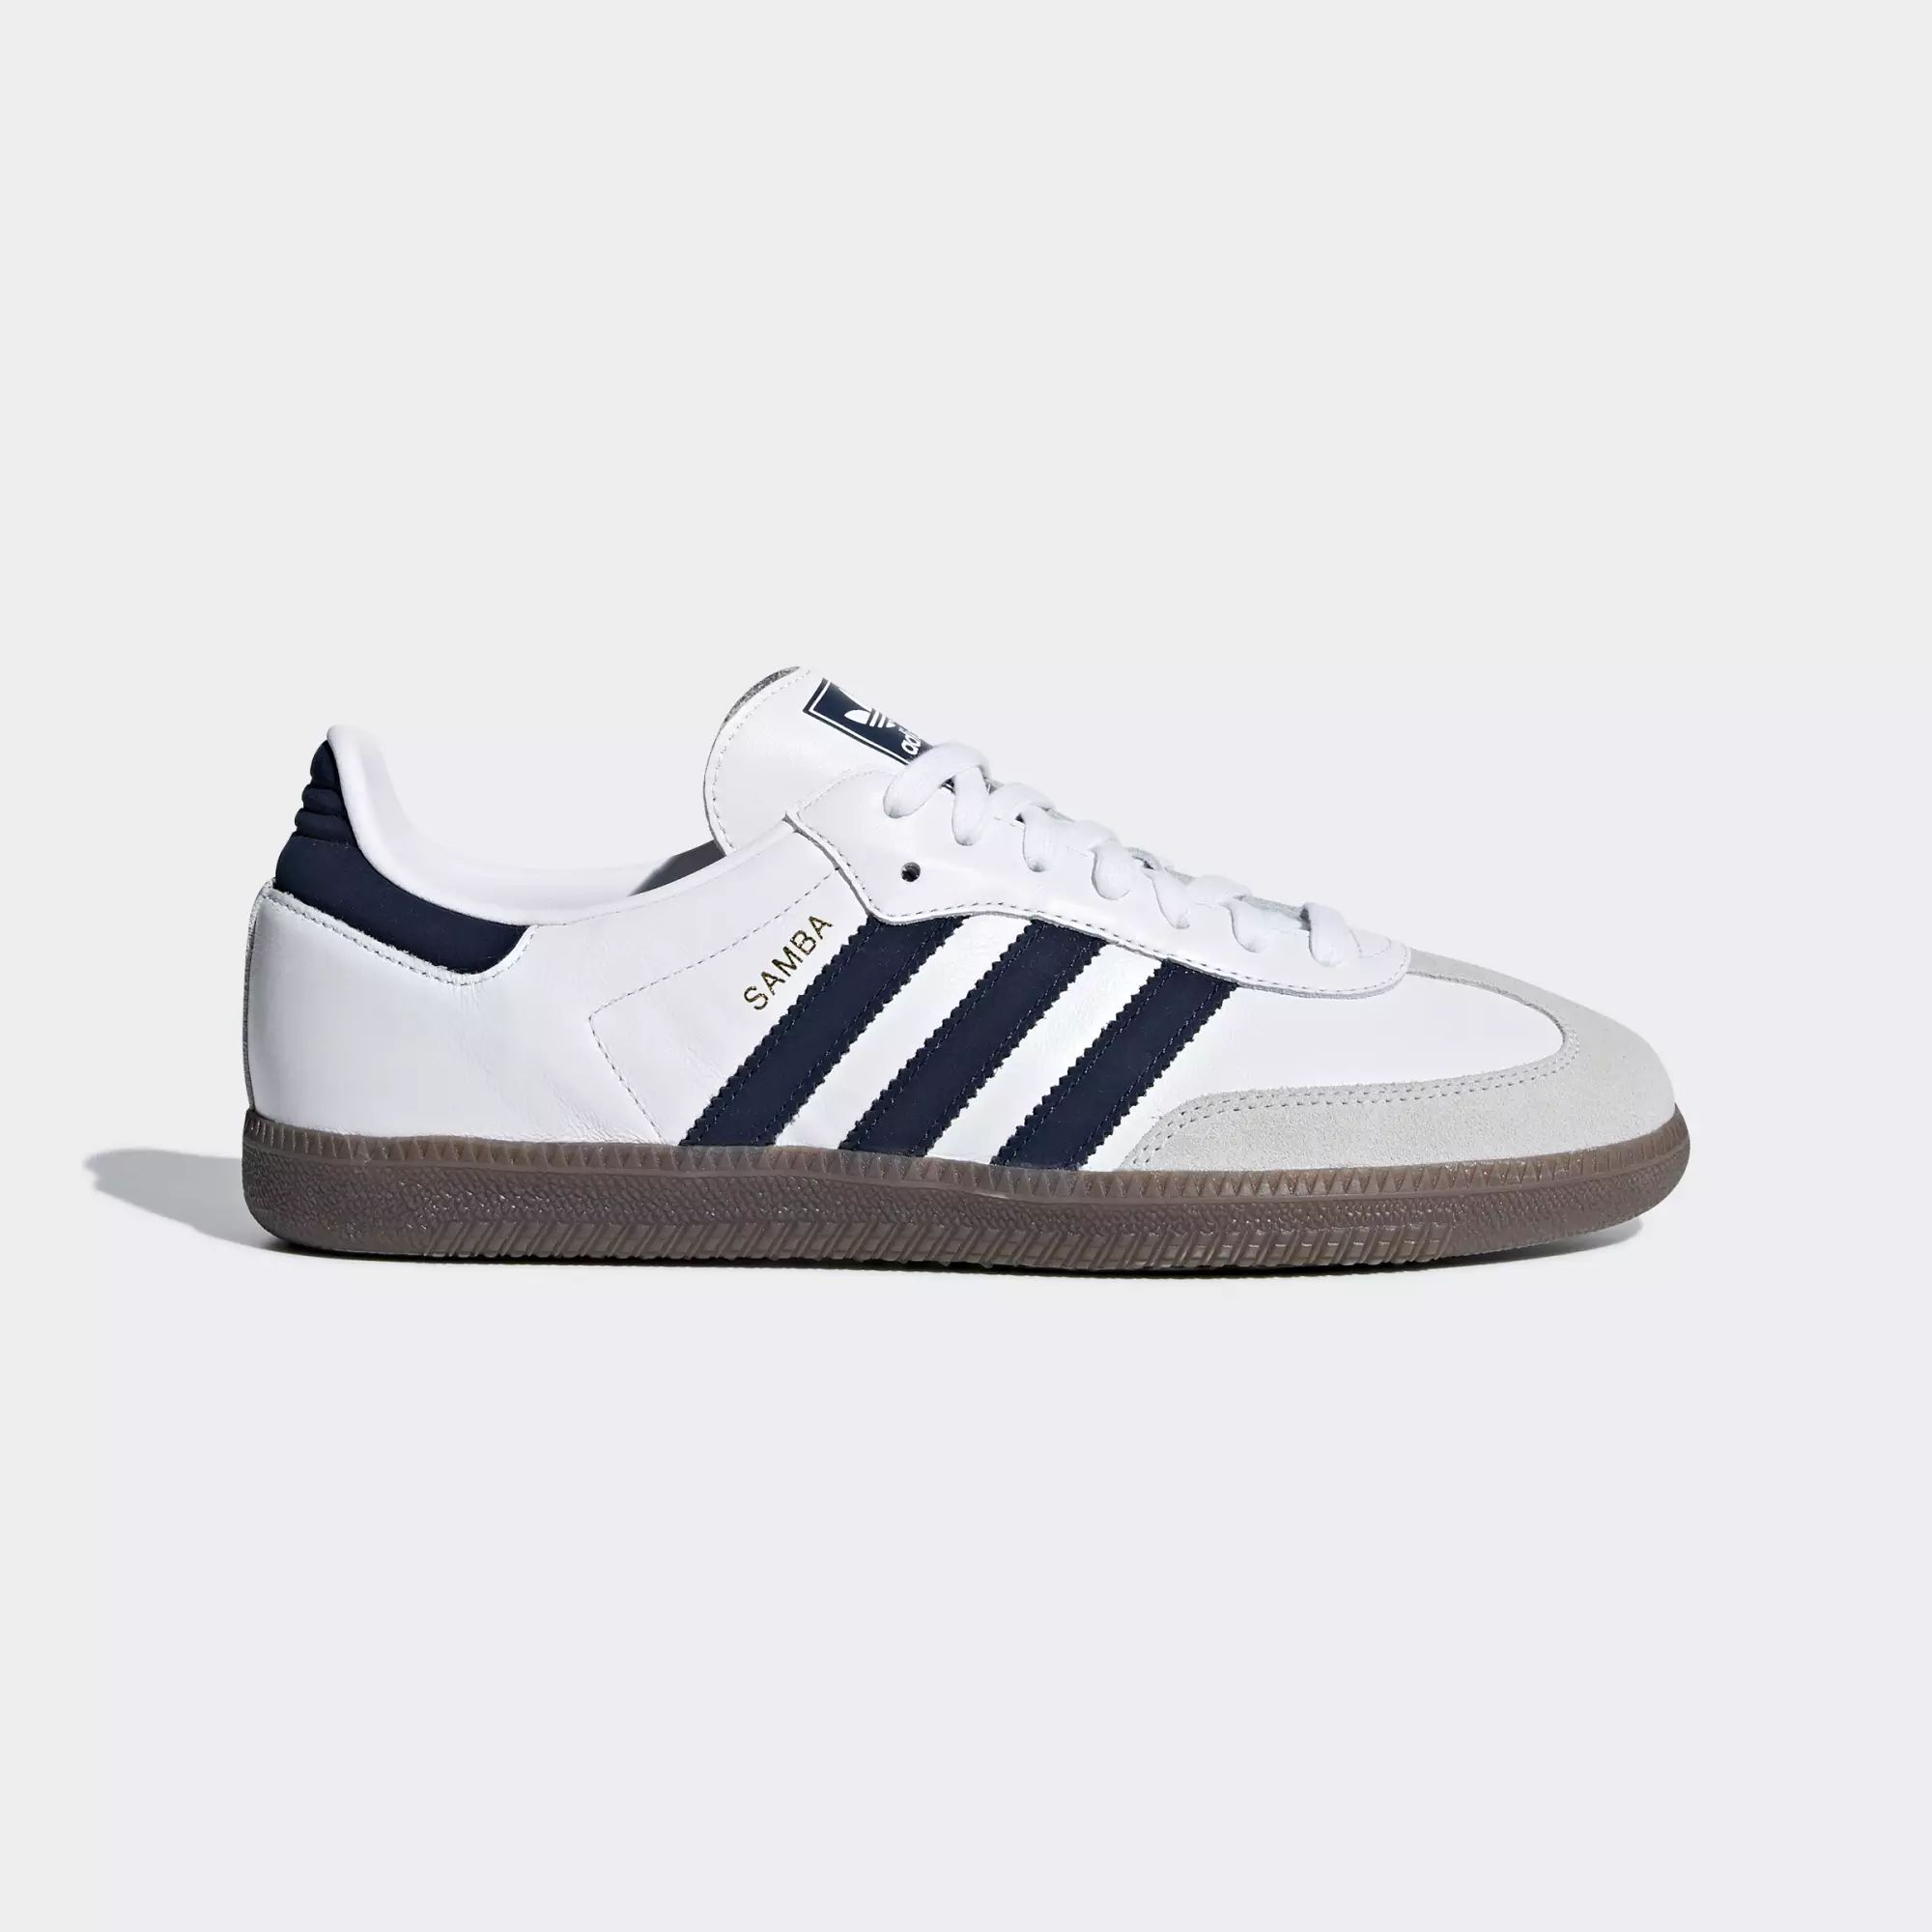 Adidas Samba OG Shoes - Ftwr White / Collegiate Navy / Crystal White